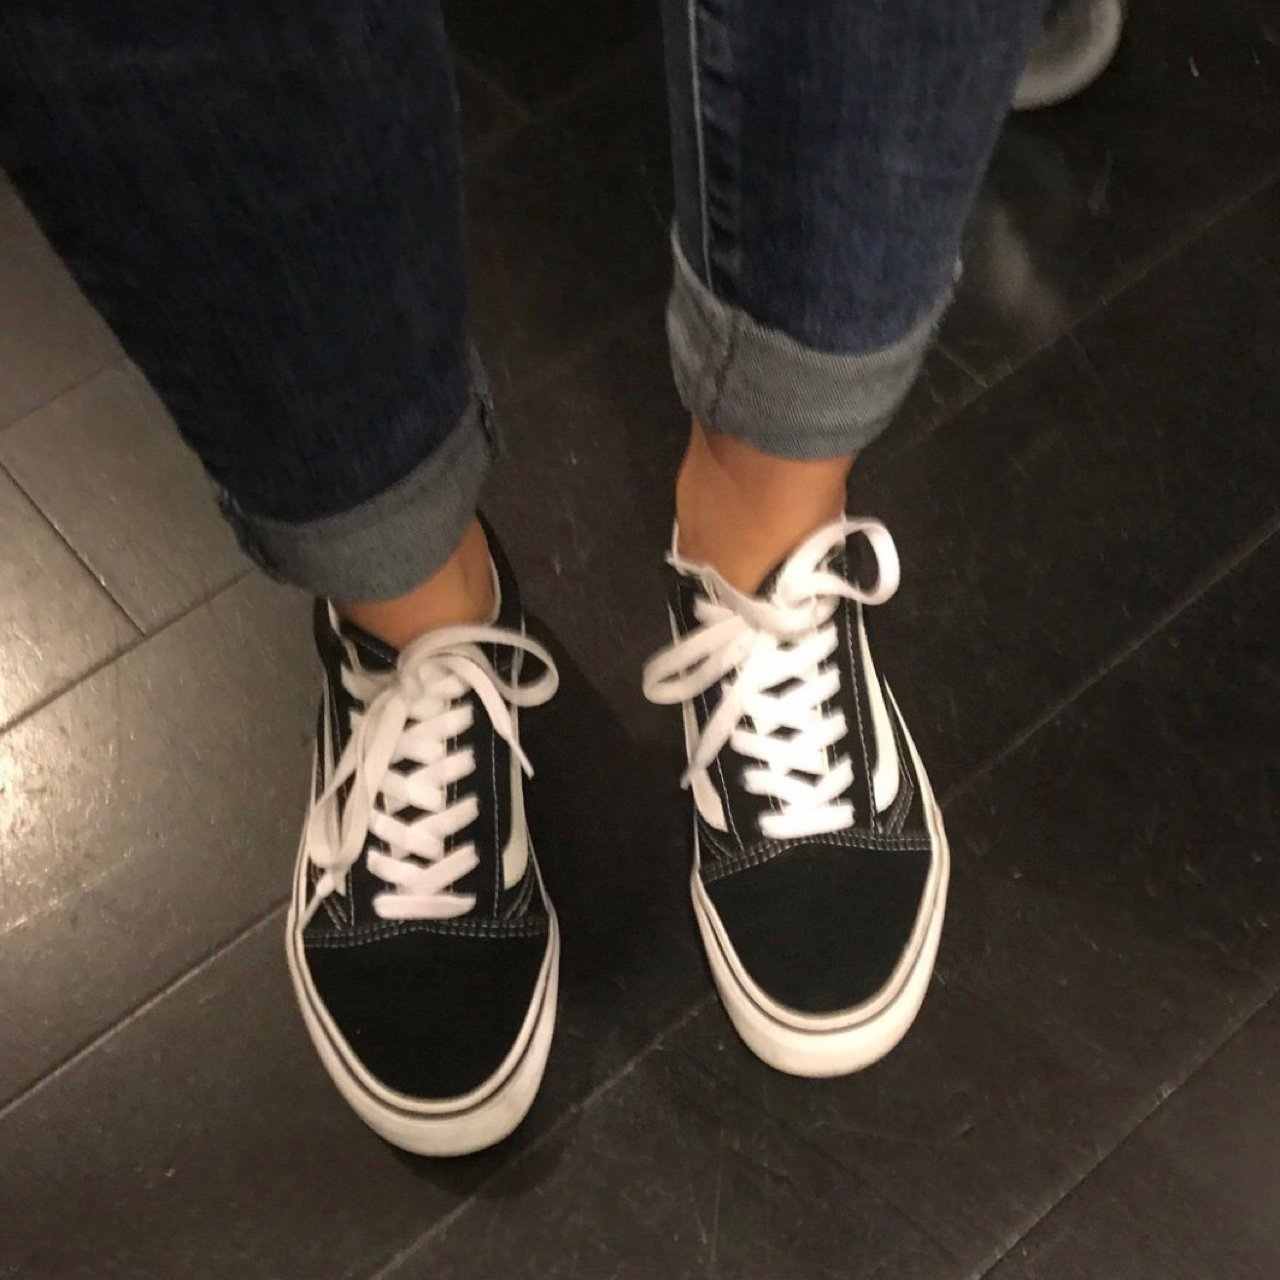 Gently Worn Vans Shoes   US YOUTH SIZE 3  US WOMEN S SIZE 5 - Depop a66d2e3a1